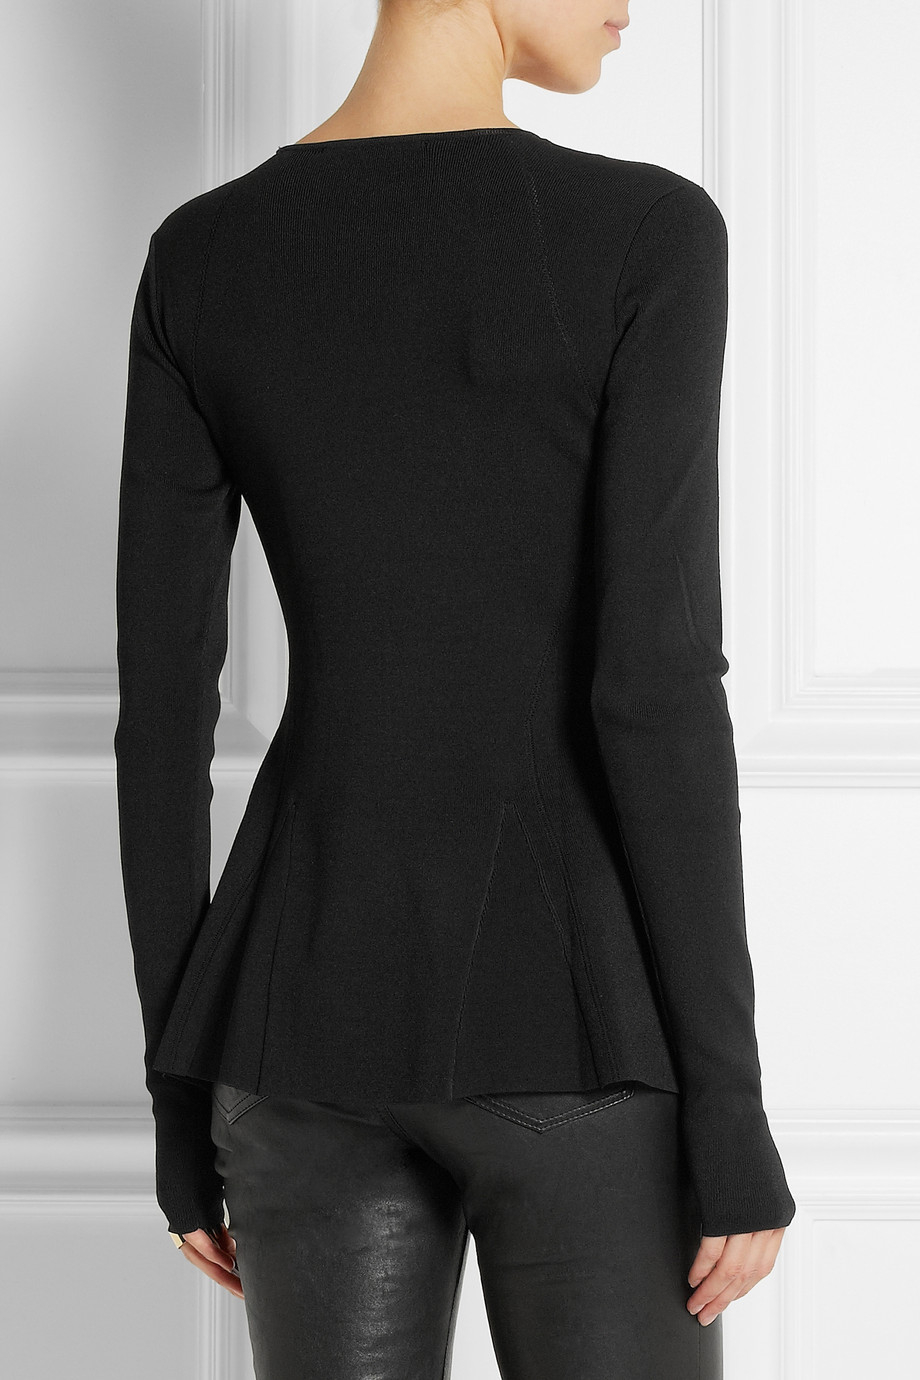 Top Quality New Online Karl Lagerfeld peplum jumper Cheap And Nice Buy Cheap Order Outlet 2018 Unisex URydOWwY